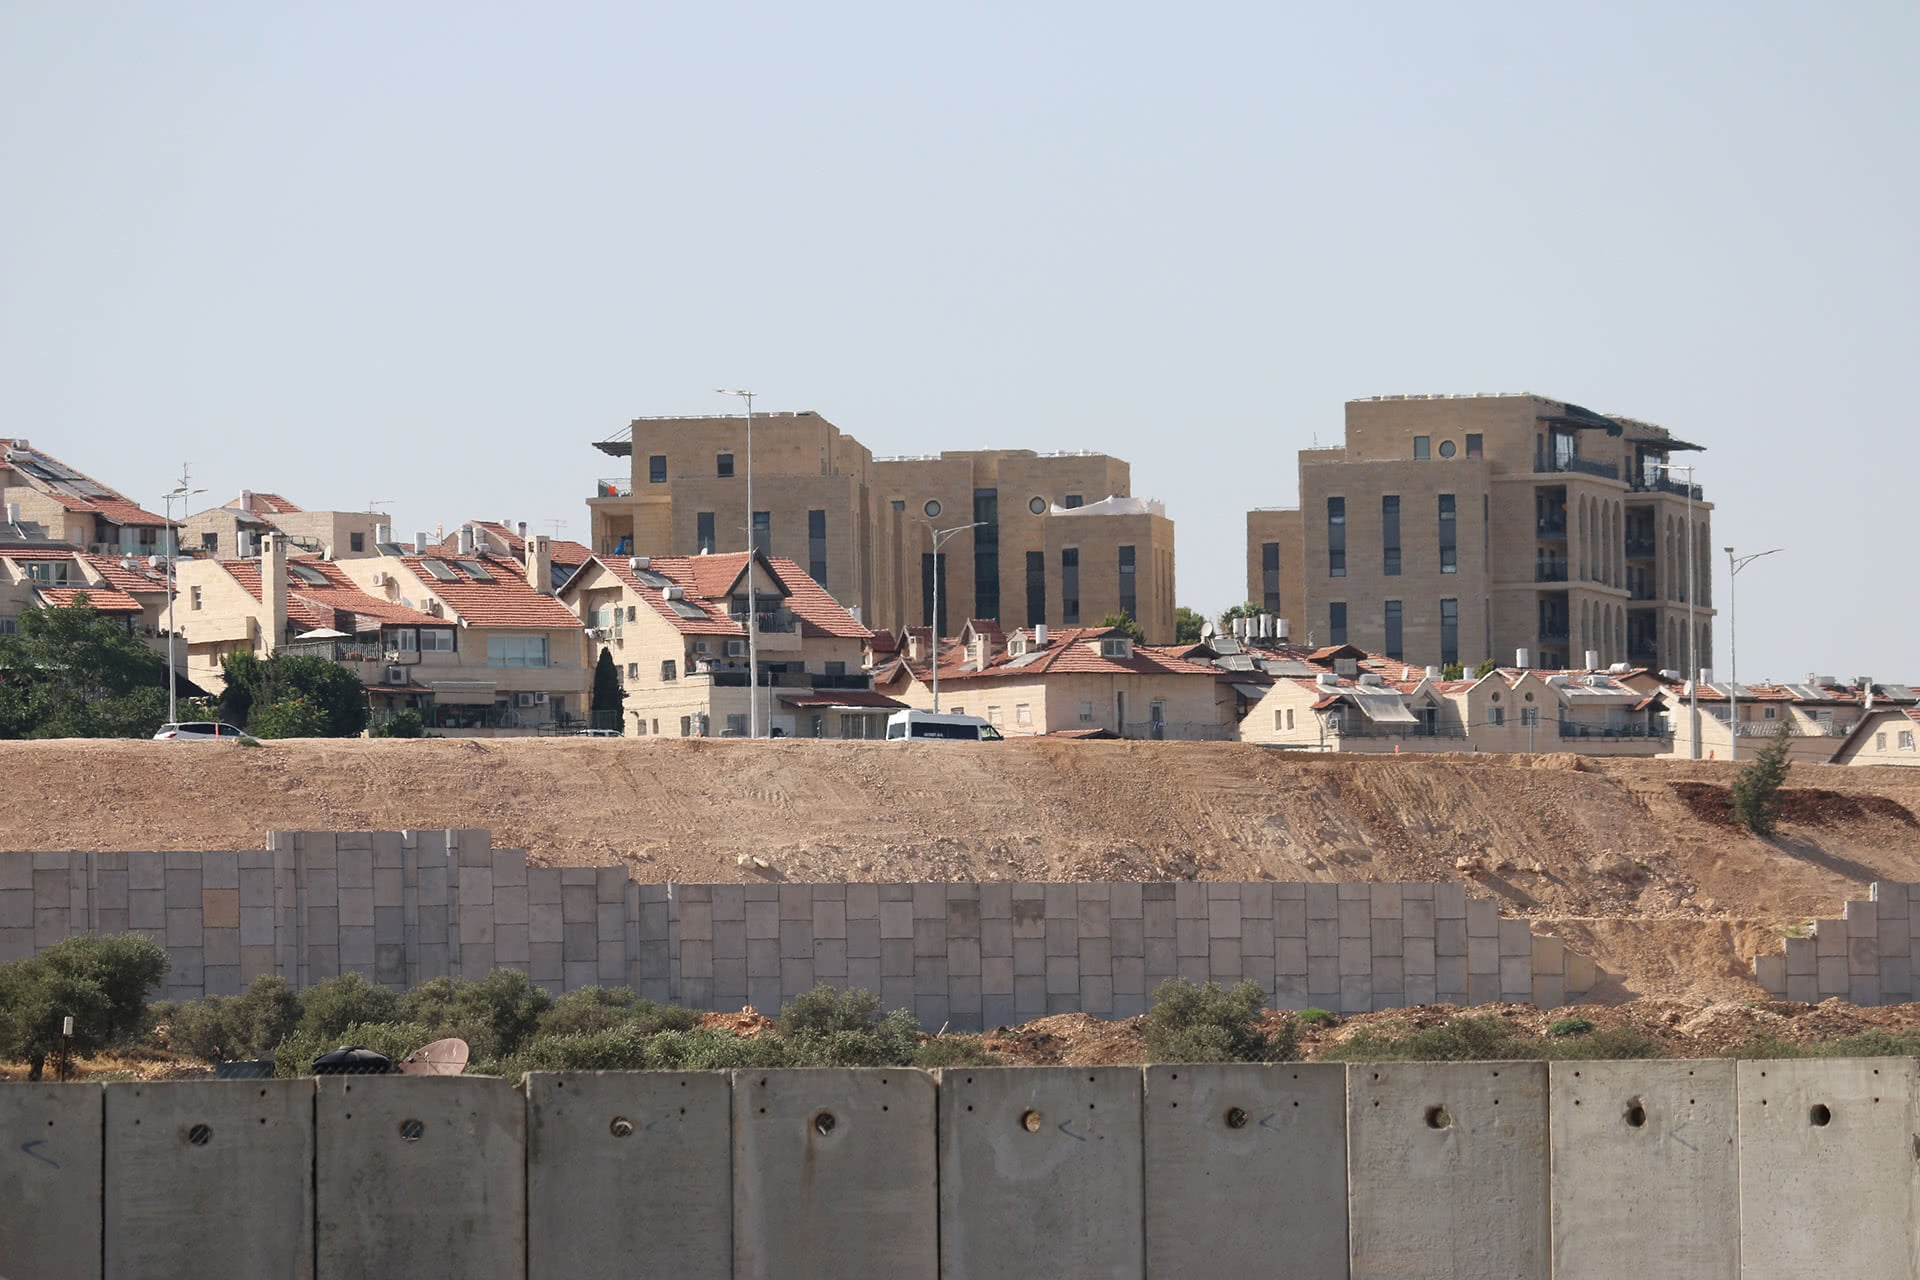 Housing units of the Israeli settlement of Gilo can be seen from Aida refugee camp over Israel's separation barrier. (Photo: DCIP / Ahmad Al-Bazz)